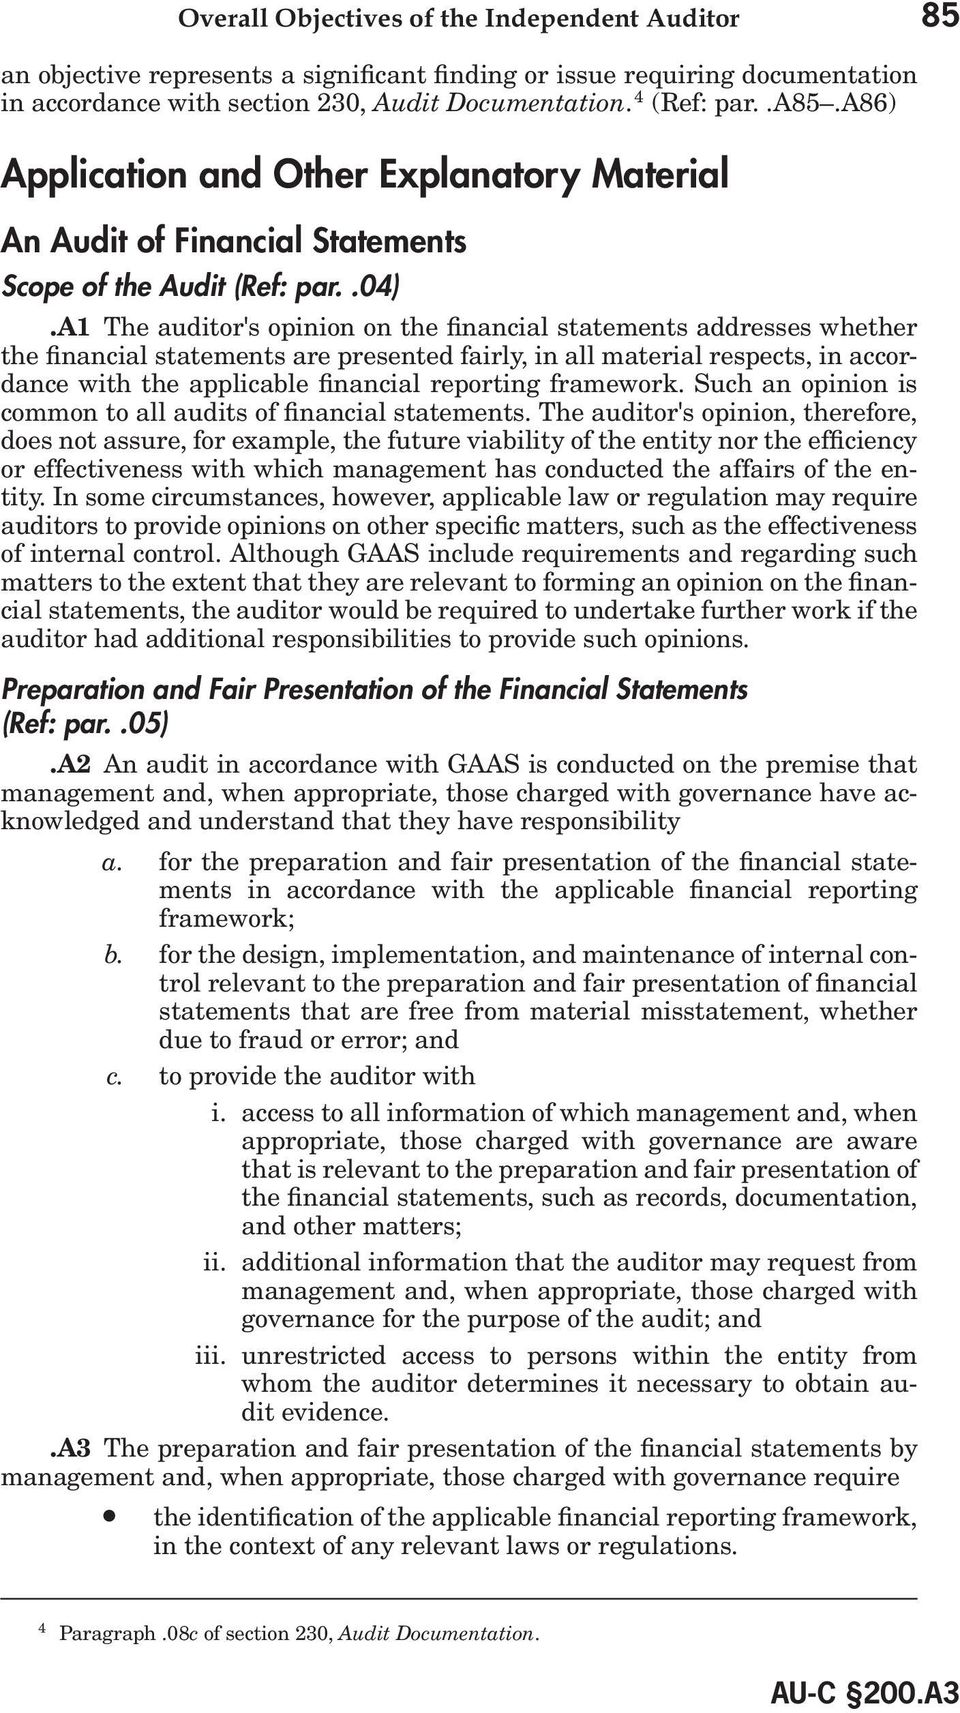 a1 The auditor's opinion on the financial statements addresses whether the financial statements are presented fairly, in all material respects, in accordance with the applicable financial reporting